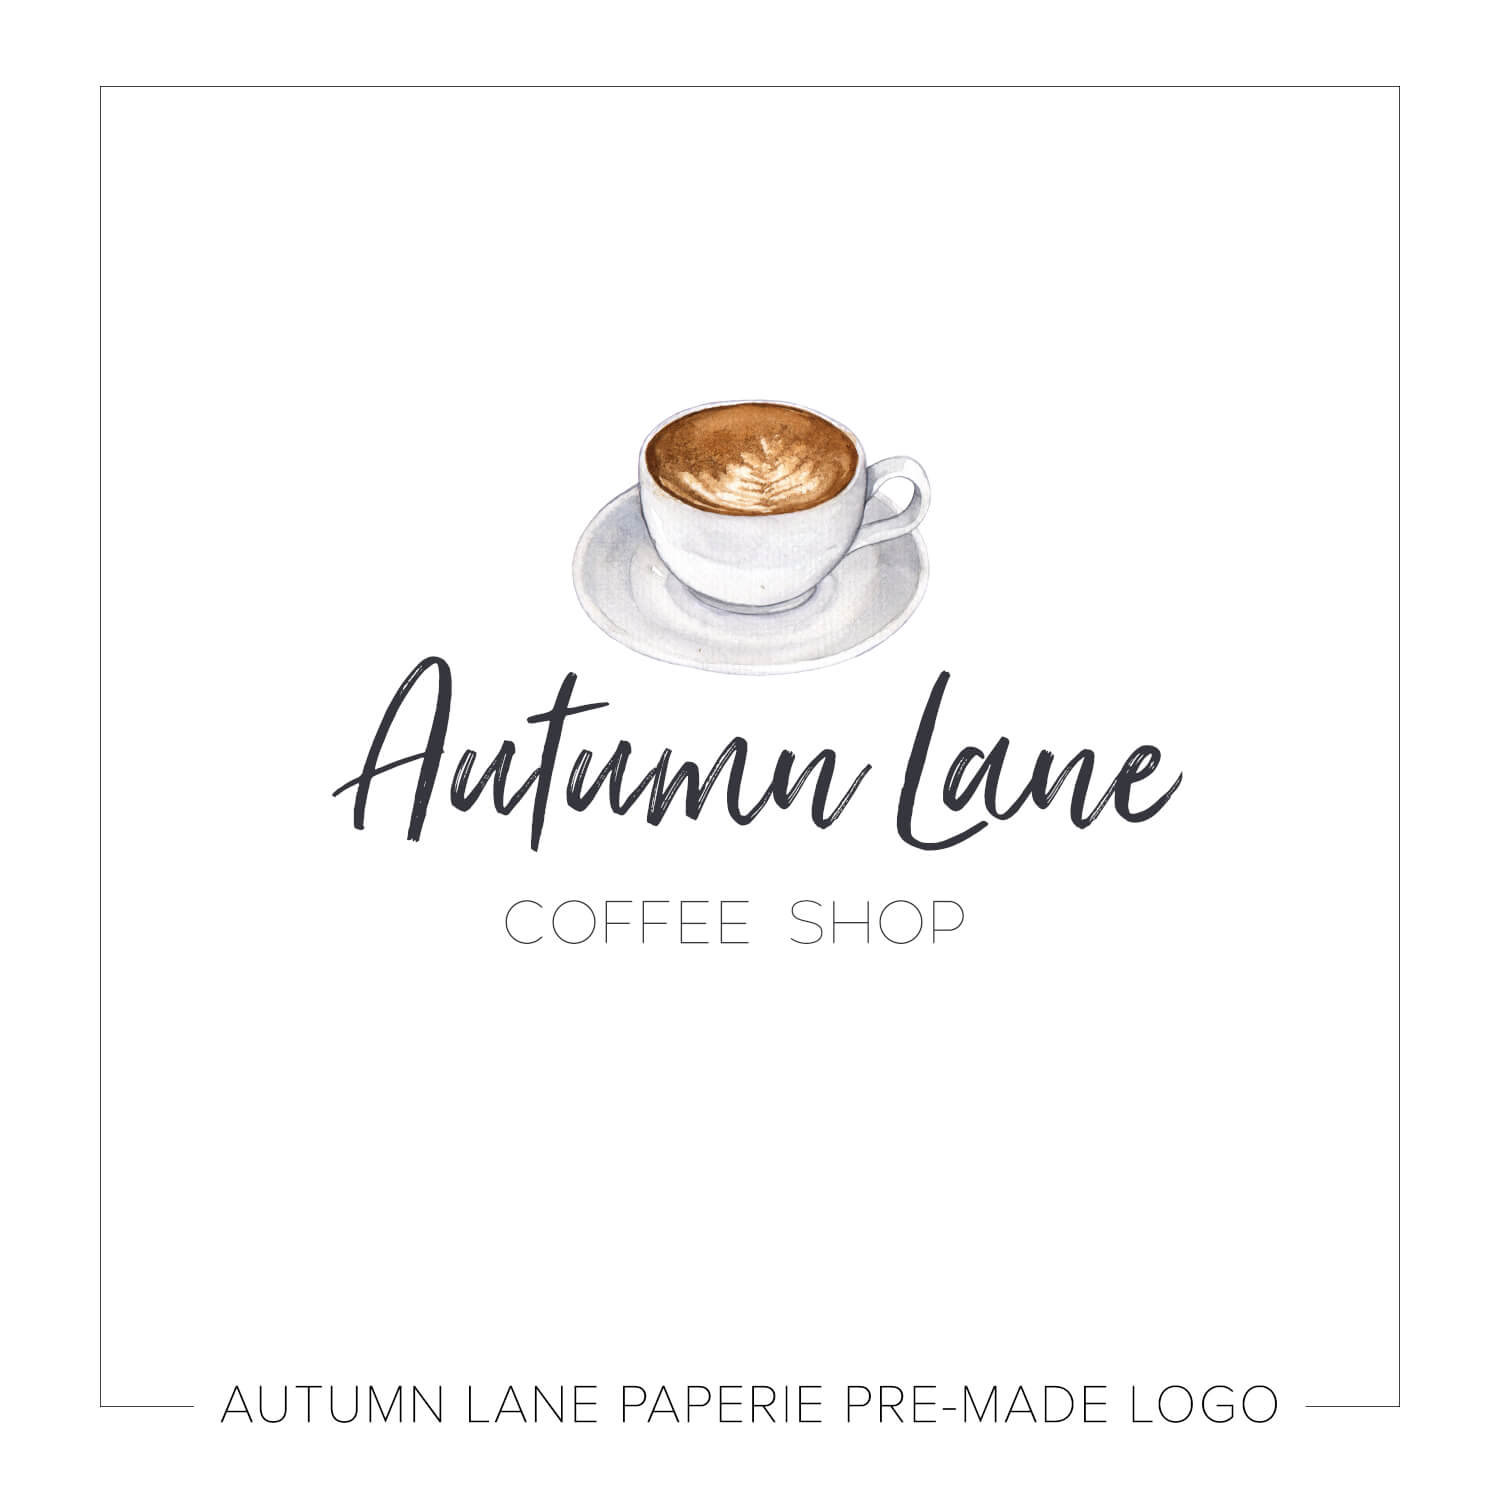 1500x1500 Tiny Coffee Cup Watercolor Logo J82 Autumn Lane Paperie